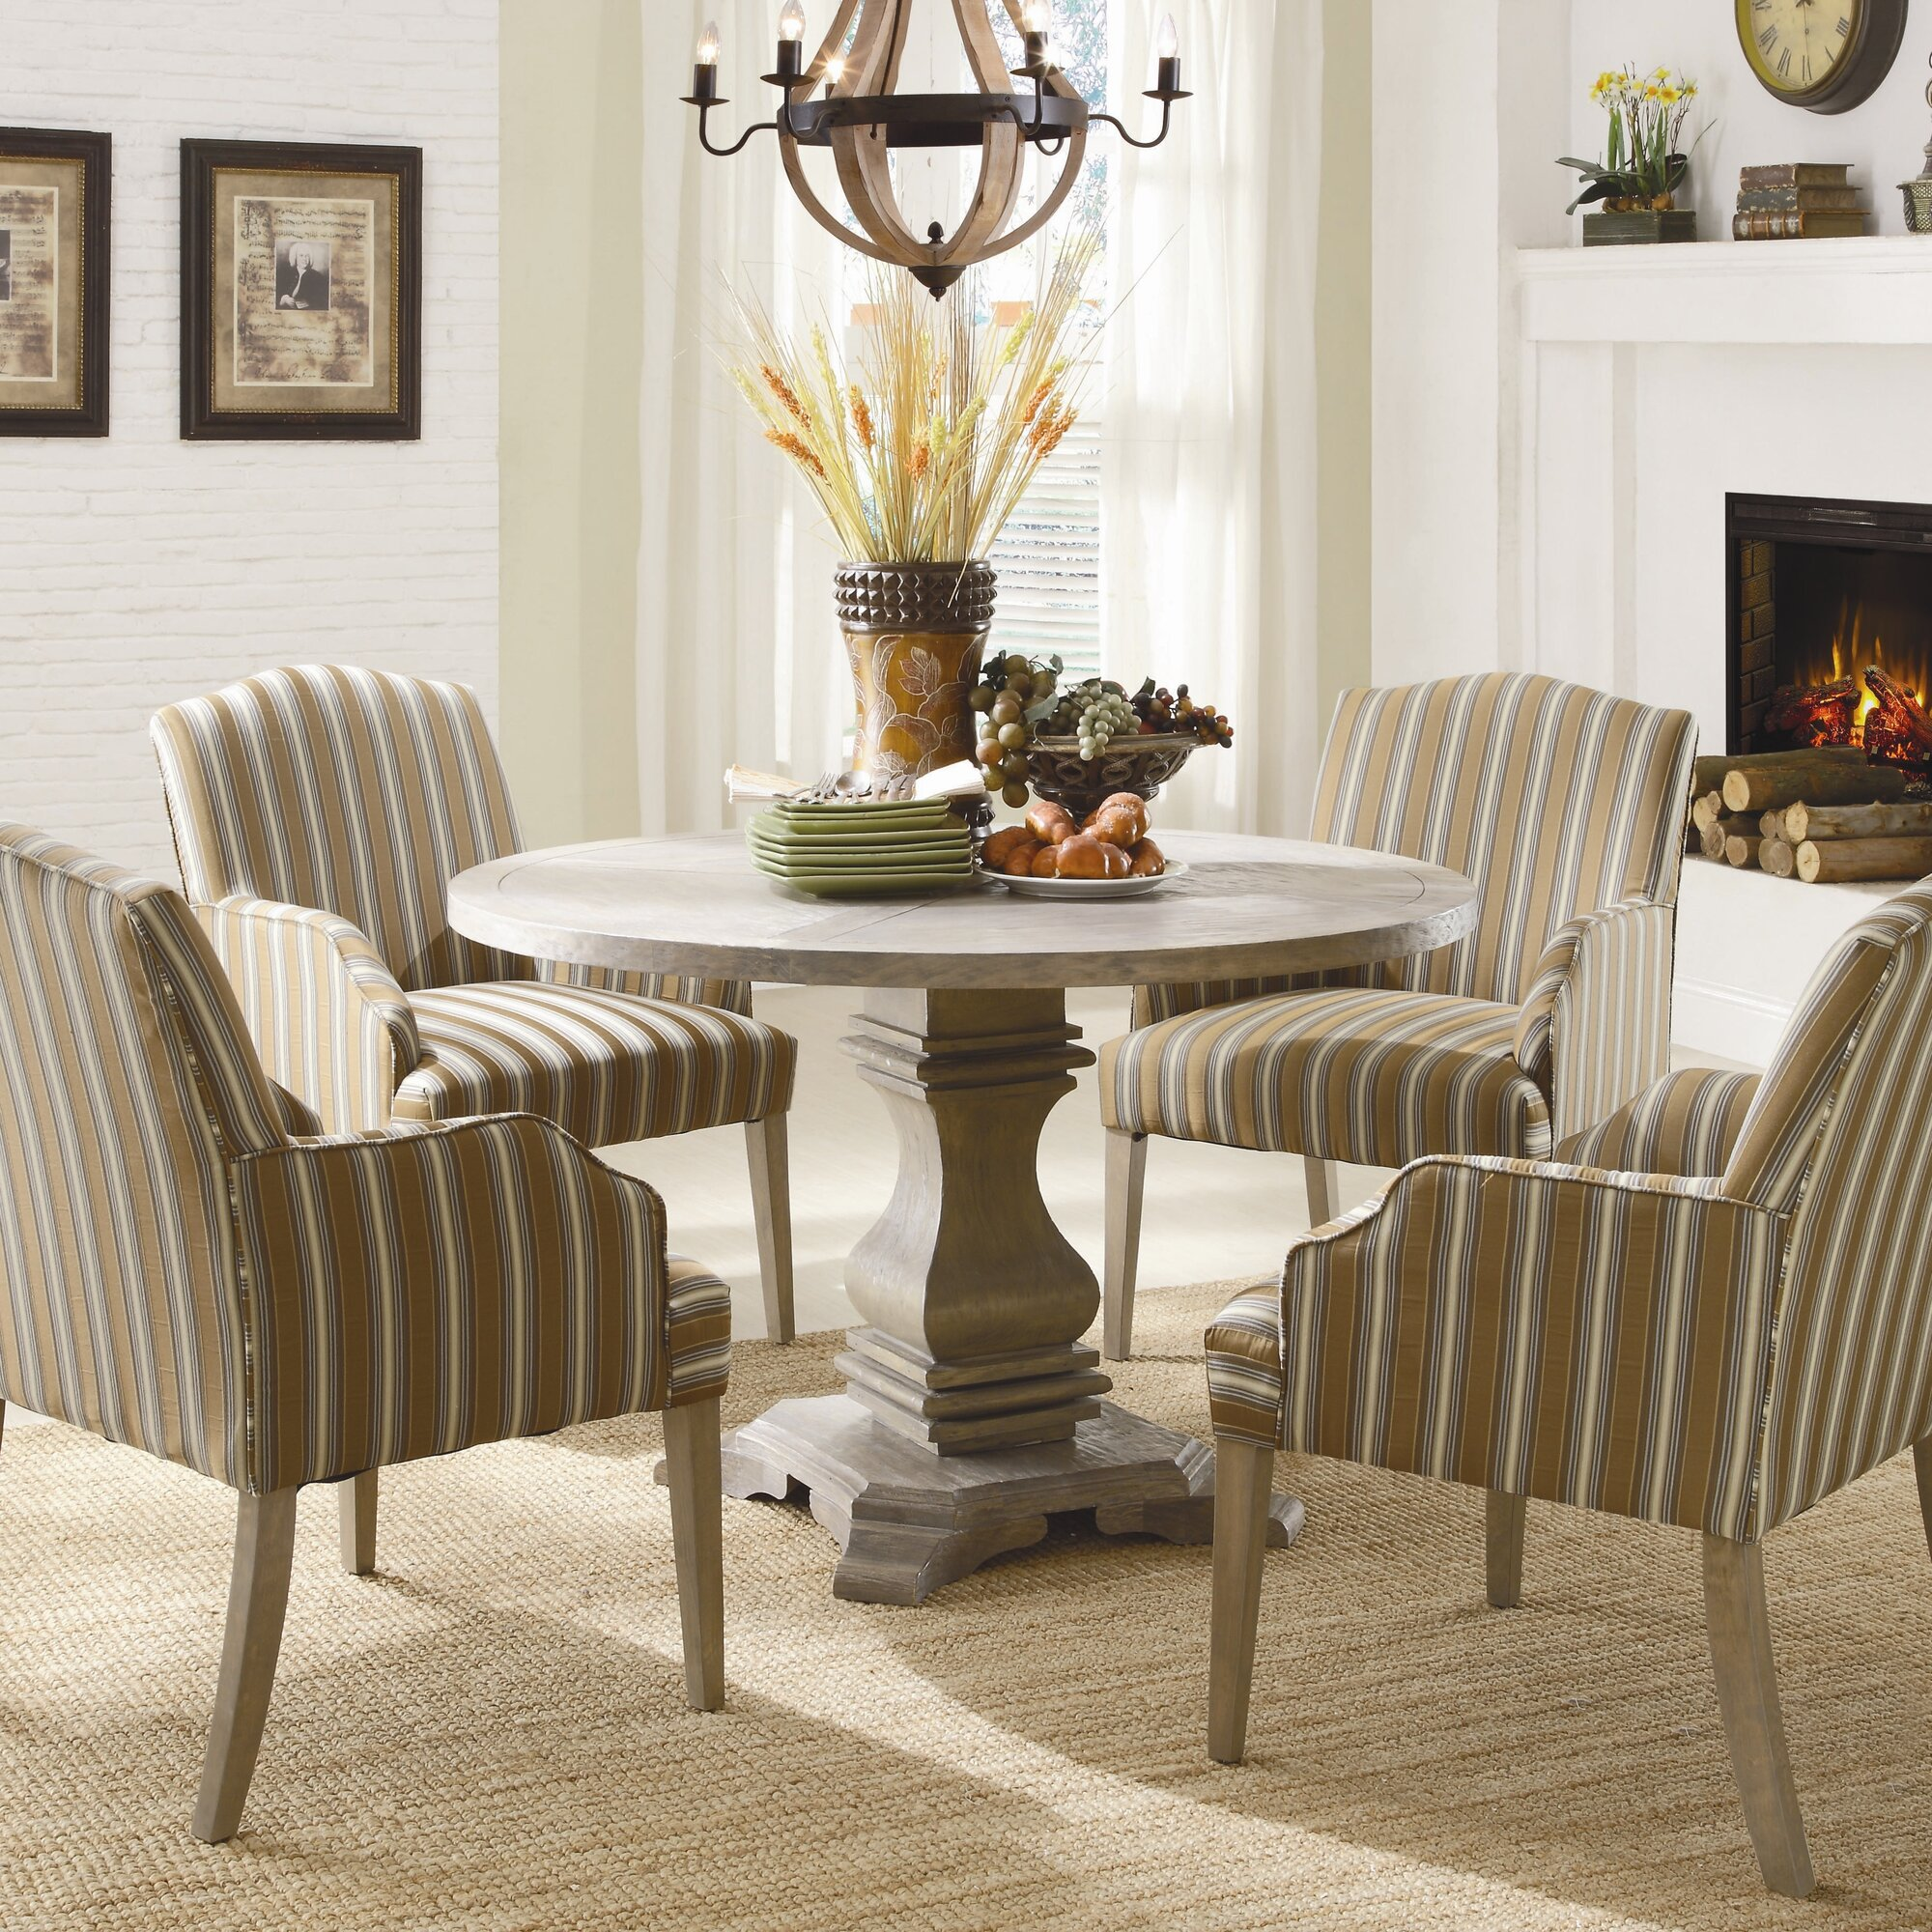 28 ballard designs dining table found on m ballarddesigns ballard designs dining table ballard designs andrews pedestal dining table decor look alikes